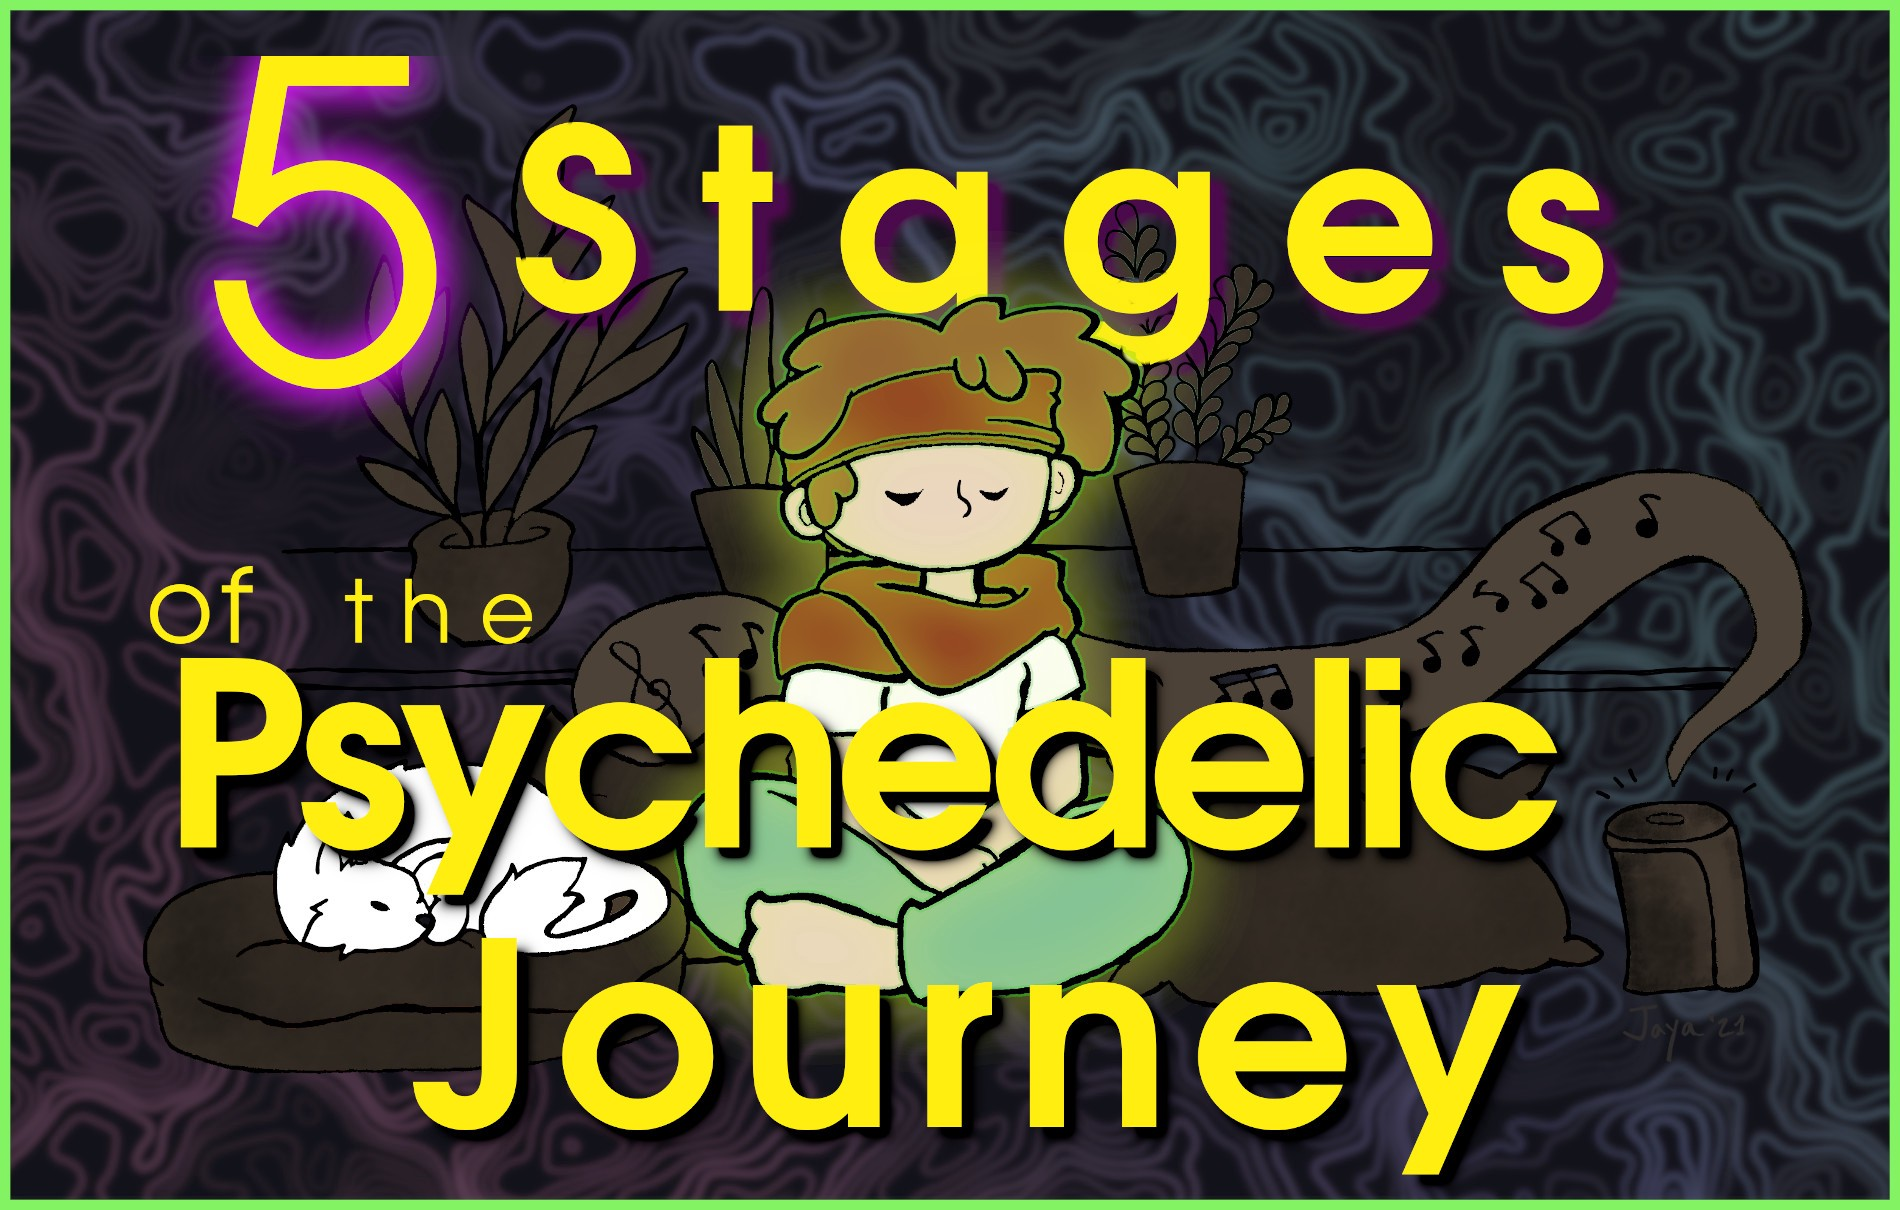 5 stages of the psychedelic journey